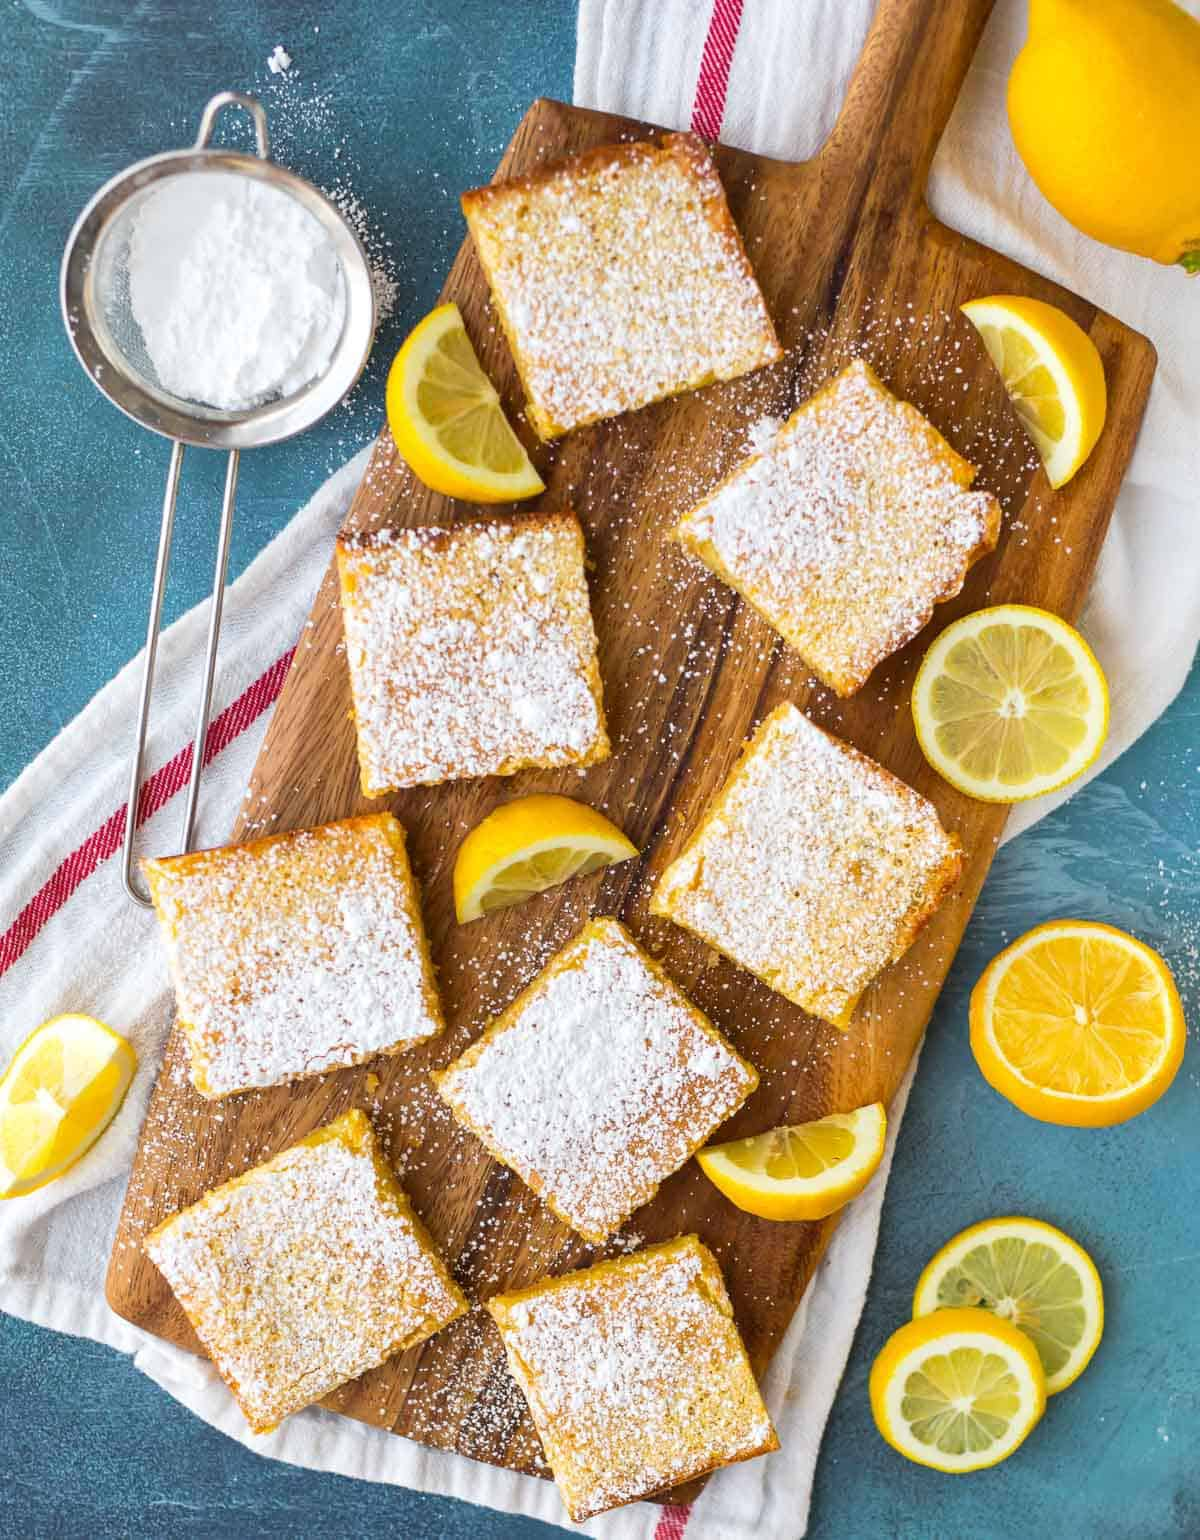 Homemade lemon bars dusted with powdered sugar on a wood serving board with lemon slices and wedges